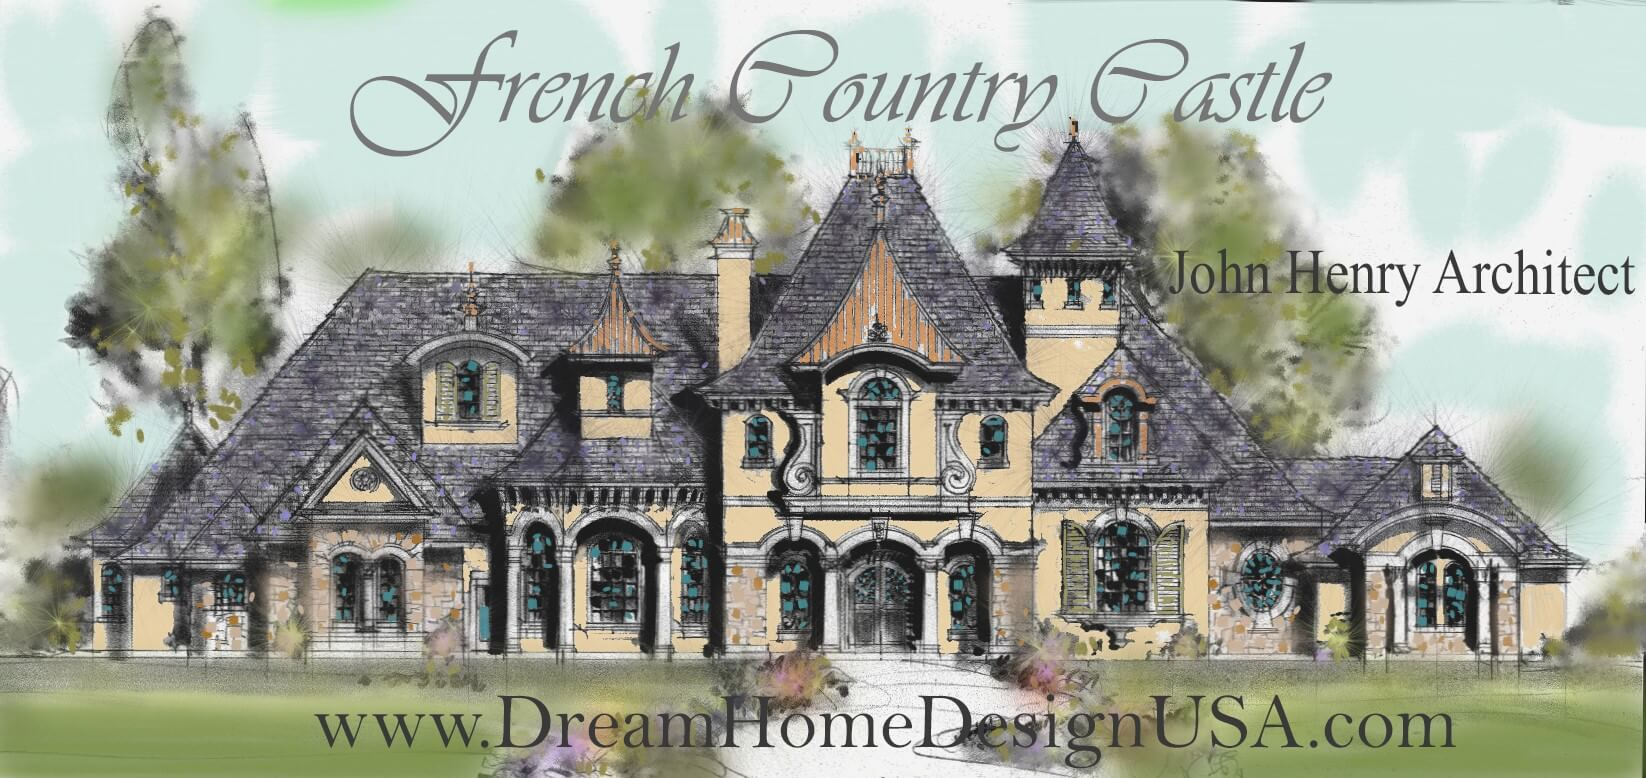 french country castle dreamhomedesignusa